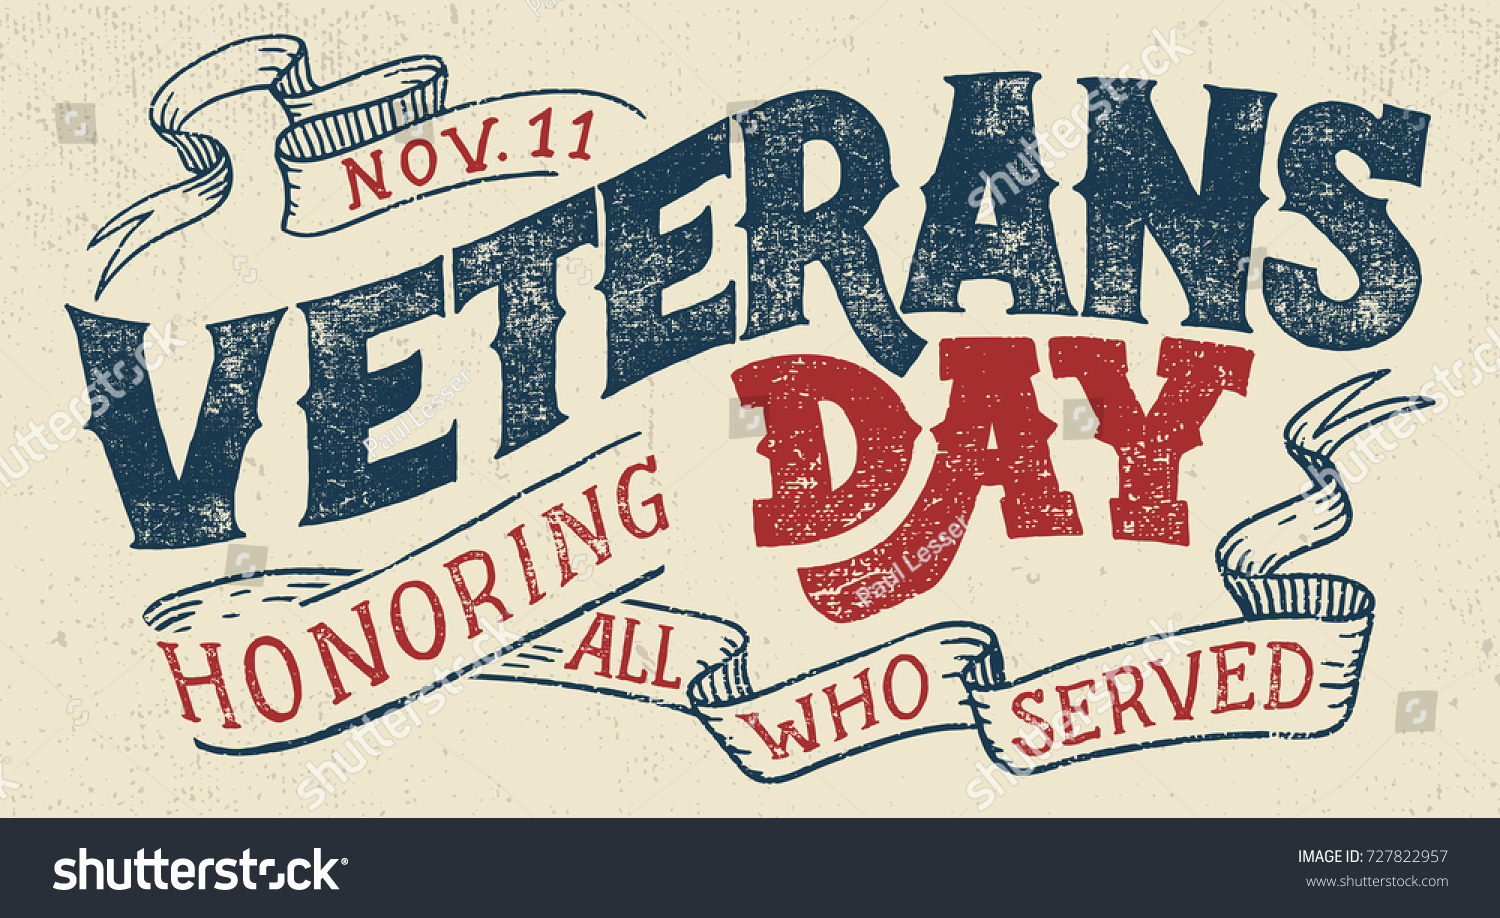 Veterans Day Honoring All Who Served Stock Vector